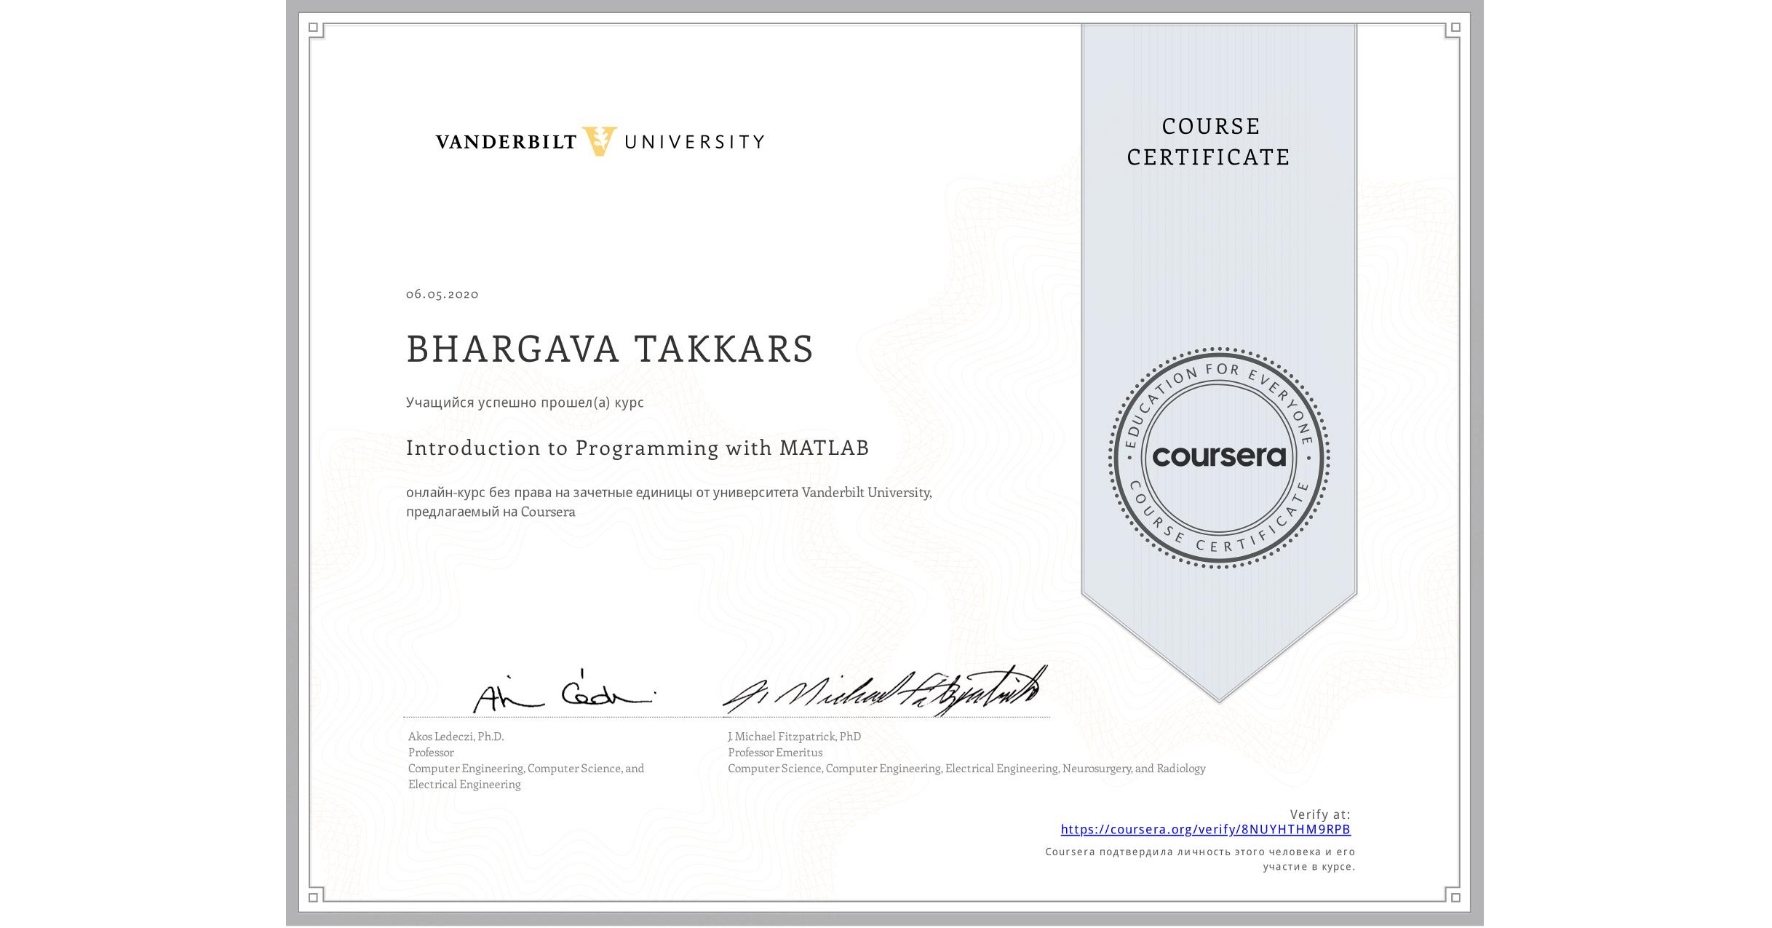 View certificate for BHARGAVA TAKKARS, Introduction to Programming with MATLAB, an online non-credit course authorized by Vanderbilt University and offered through Coursera